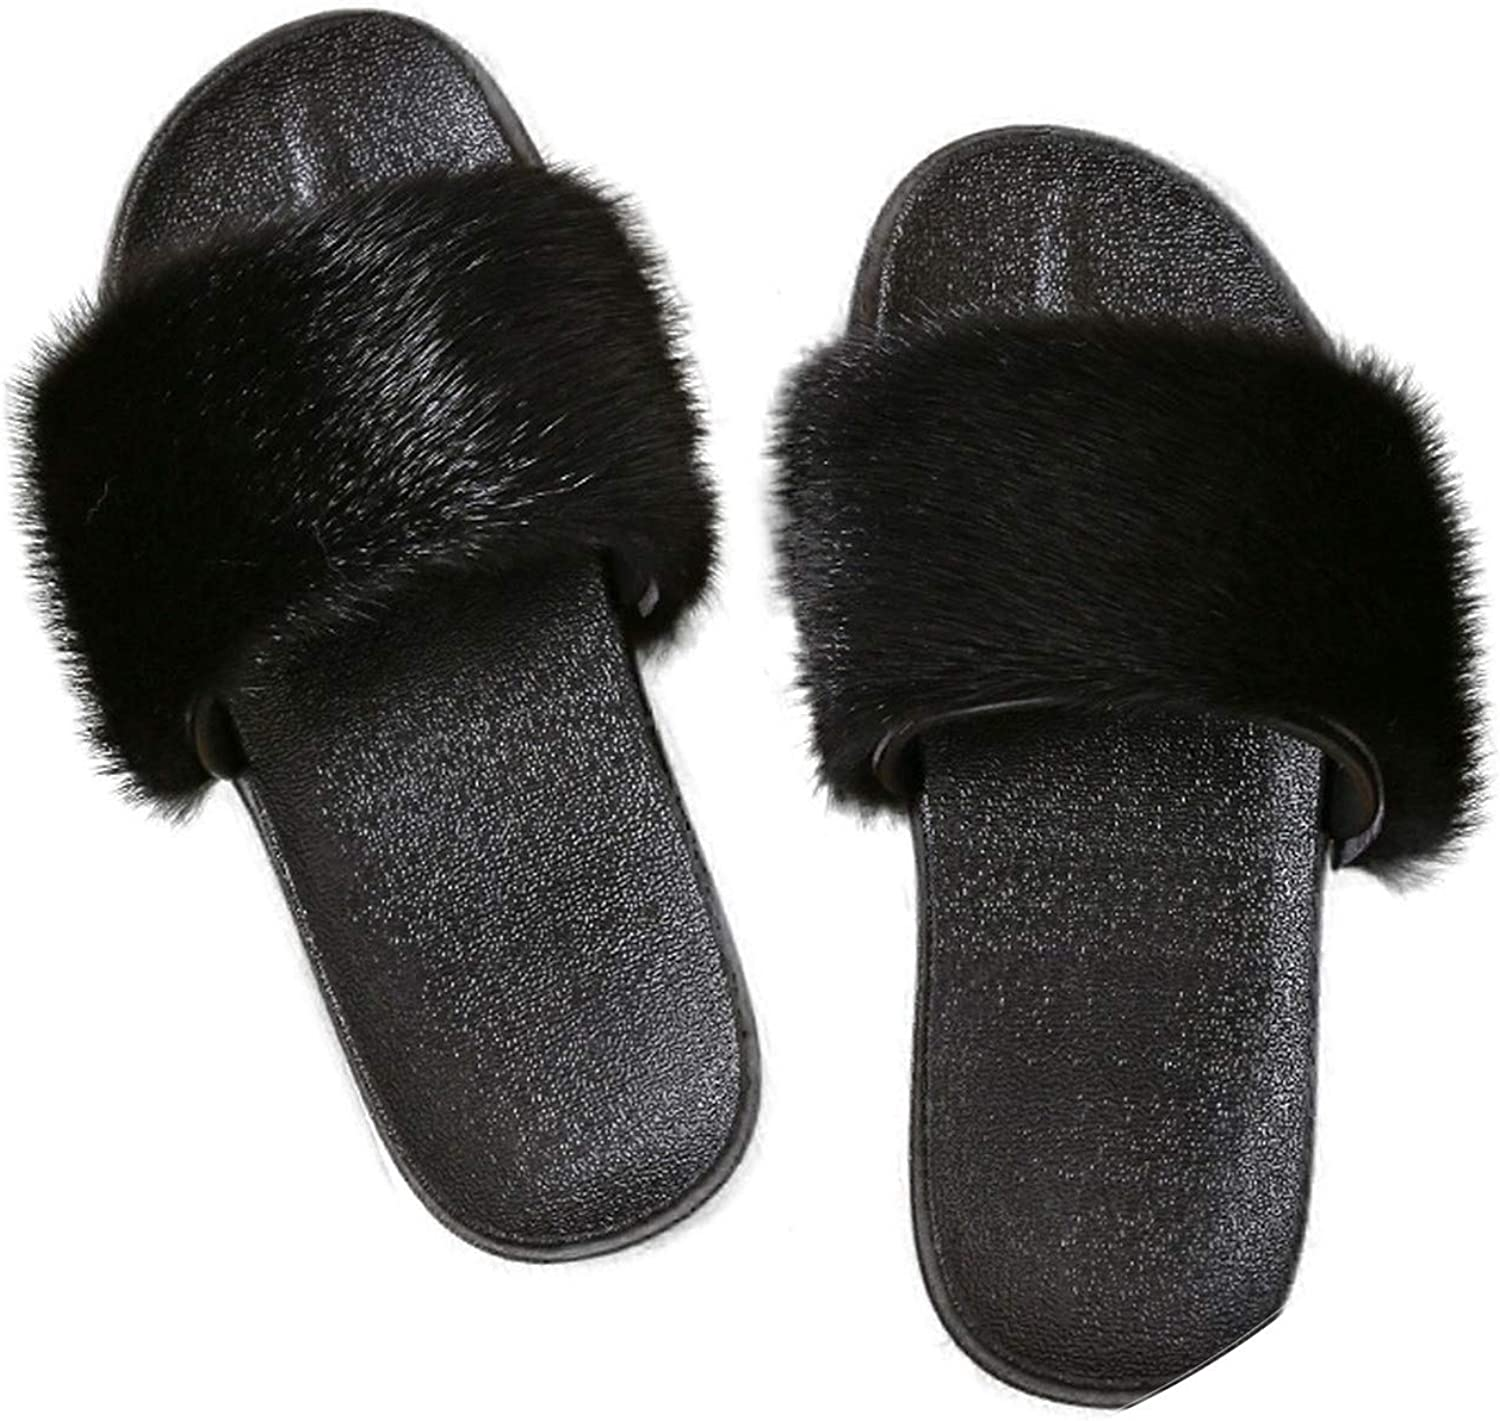 Luxury Women Real Mink Fur Sandals Fluffy Fur Slides Rubber Flat Non-Slip Casual Home Slippers Soft Lady Large Size Shoes,Black,7.5